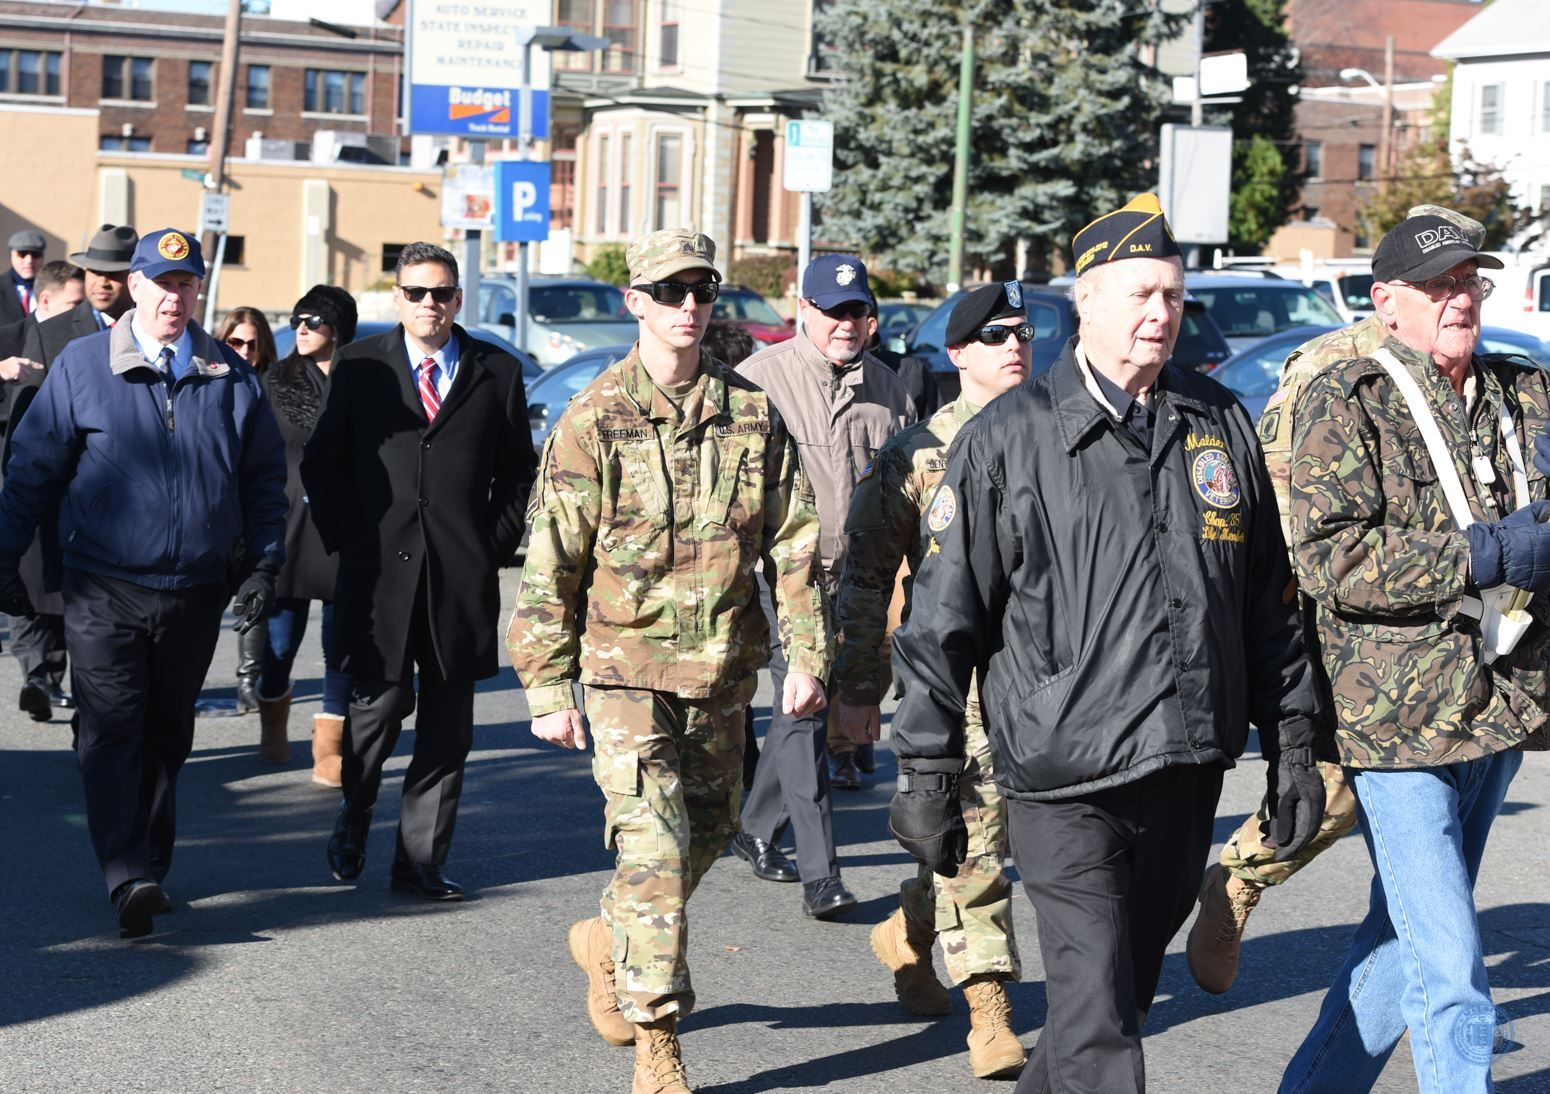 Veterans Marching in Veterans Day Parade